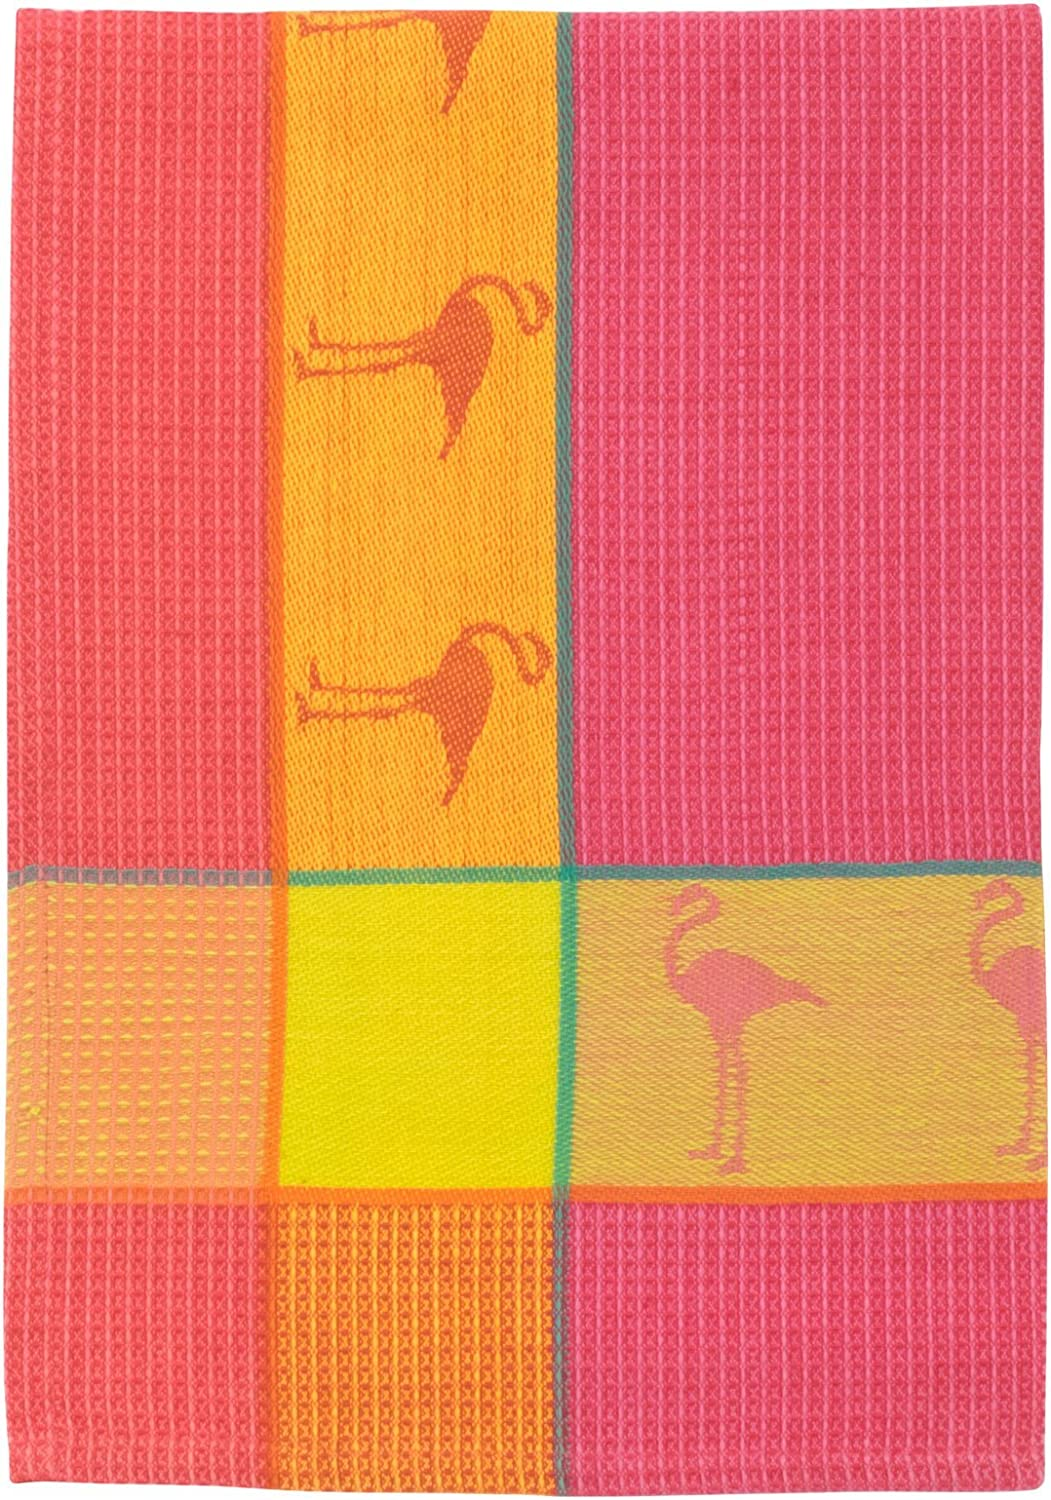 Traders and Company 100% Cotton Year-end gift Towel San Francisco Mall Yellow 20